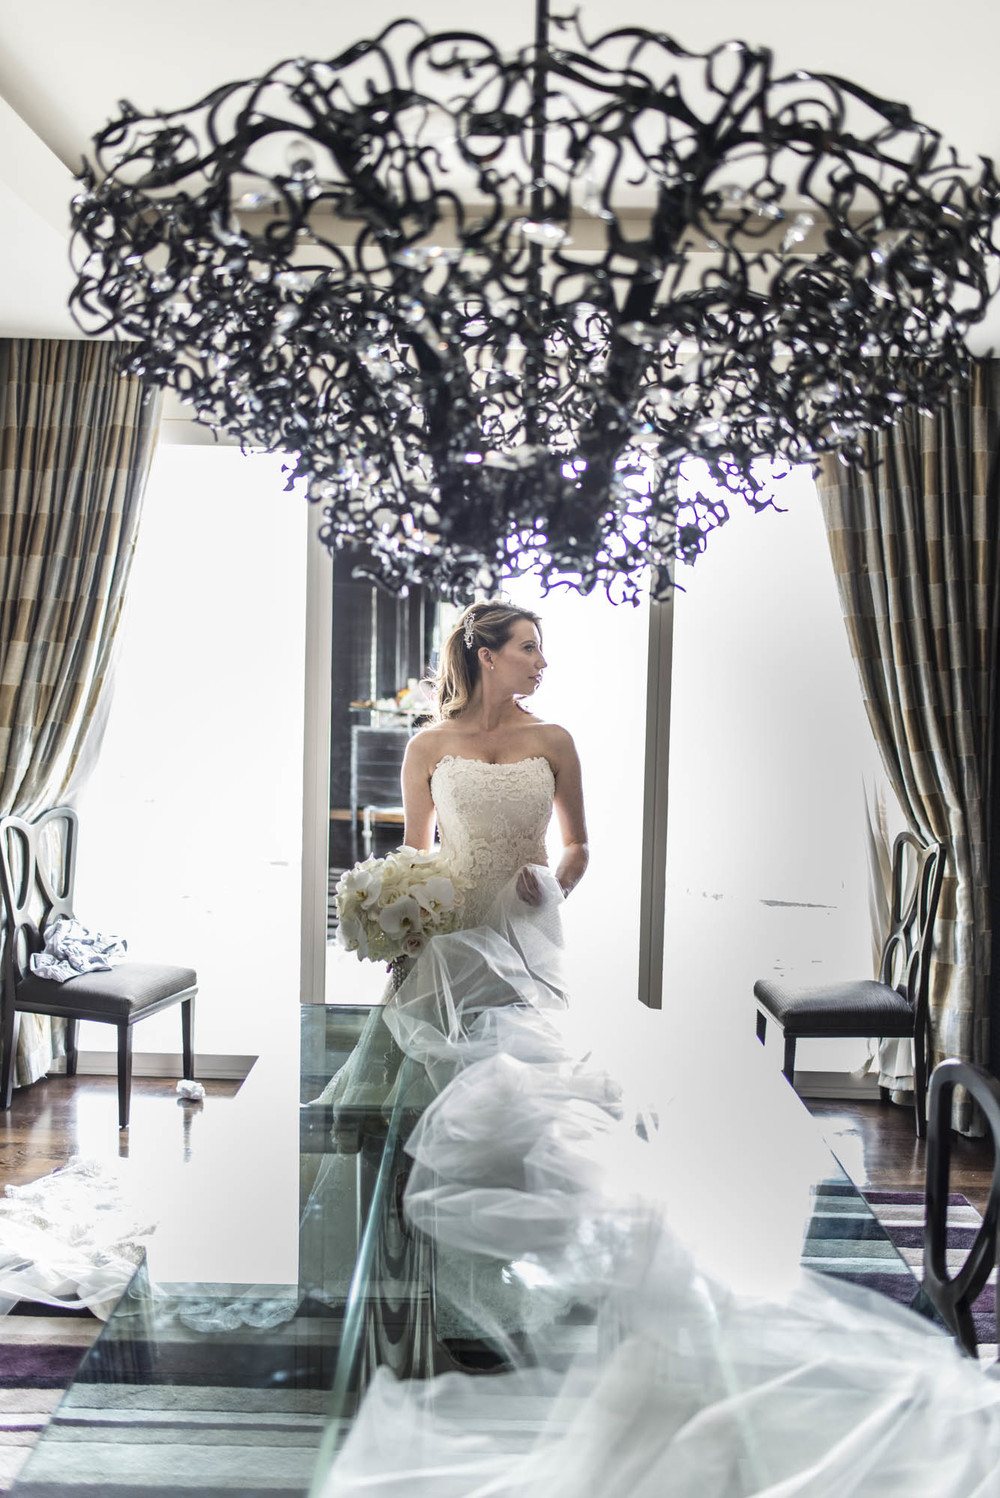 Bridal Portrait at Mandarin Oriental.    CREATIVE PARTNERS:    PHOTOGRAPHY •   AltF Photography  , PLANNING •   Andrea Eppolito Events  , FLORAL AND DECOR DESIGN •  Destinations by Design  , VENUE AND CATERING •   Mandarin Oriental, Las Vegas  , STATIONERY DESIGN •   Paper and Home  ,   BRIDE'S GOWN •  Vera Wang , SHOES •  Jimmy Choo ,   GROOM'S FORMAL WEAR •   Vera Wang  ,   ENGAGEMENT RING •  Delage Jewelers ,   WEDDING BANDS •  T-Birds Jewels   ,   CAKE DESIGN •  Mandarin Oriental Las Vegas , DRAPING;   DANCE FLOOR DESIGN AND PRODUCTION •  Destination by Design ,   LIVE EVENT ARTIST •  Sam Day , ENTERTAINMENT   •  Lucky Devils Band , CINEMATOGRAPHY •  Something New